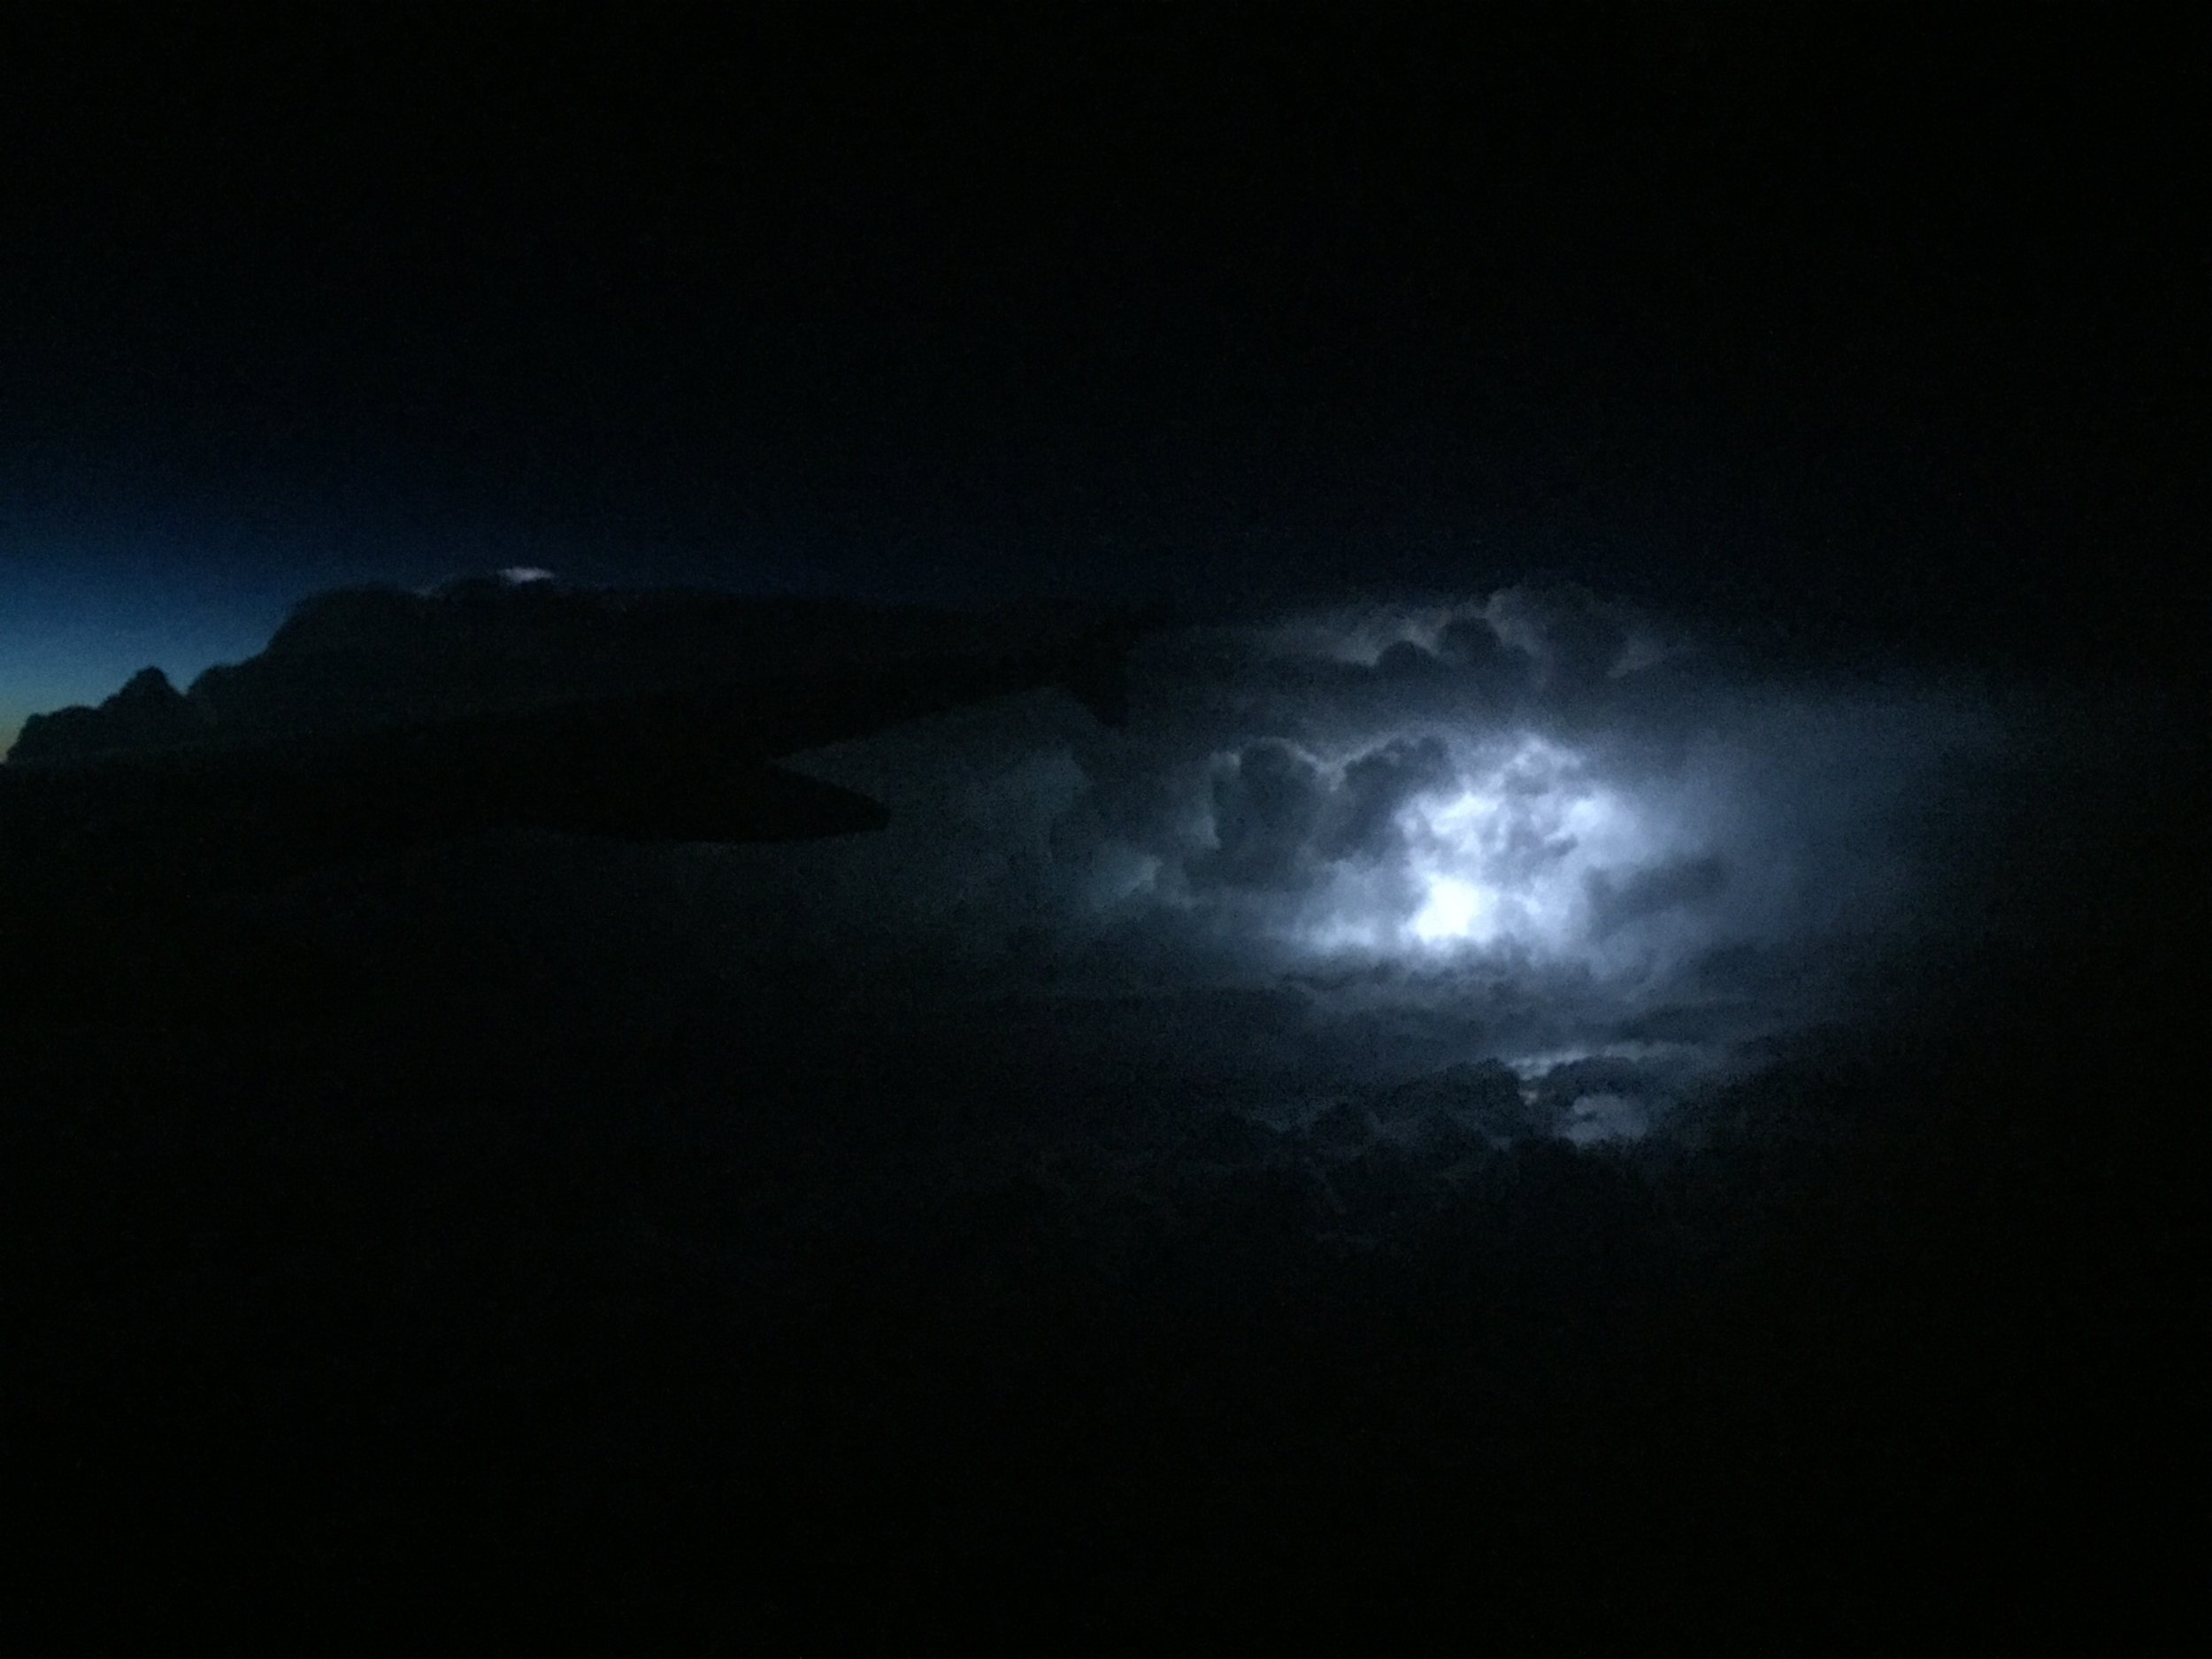 Luckily this electrical storm on the flight was not something we experienced on route